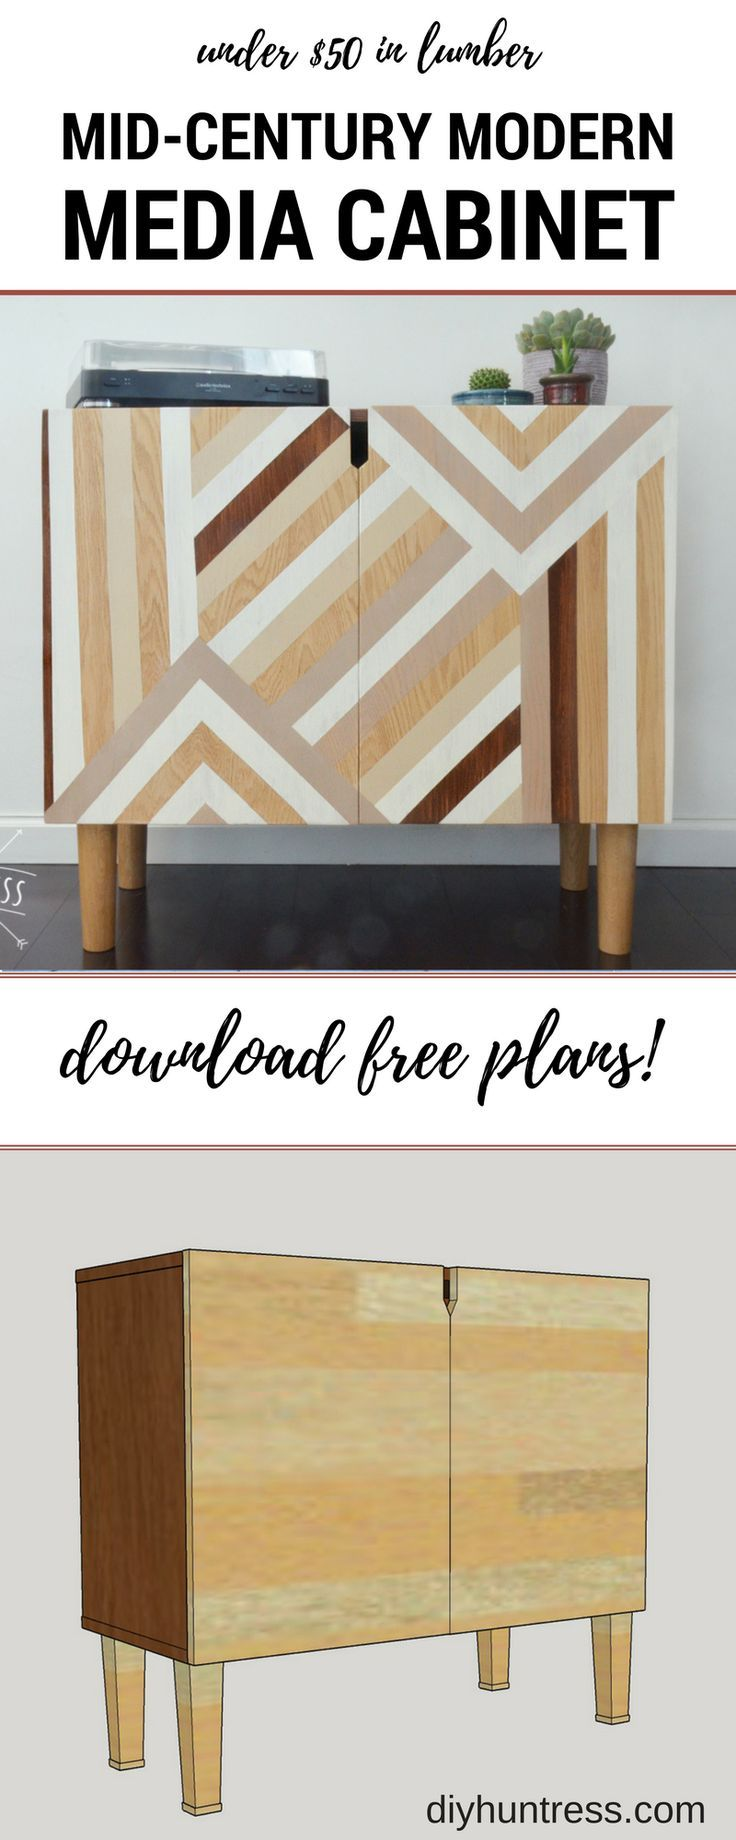 Build a modern media cabinet for $50 in lumber!